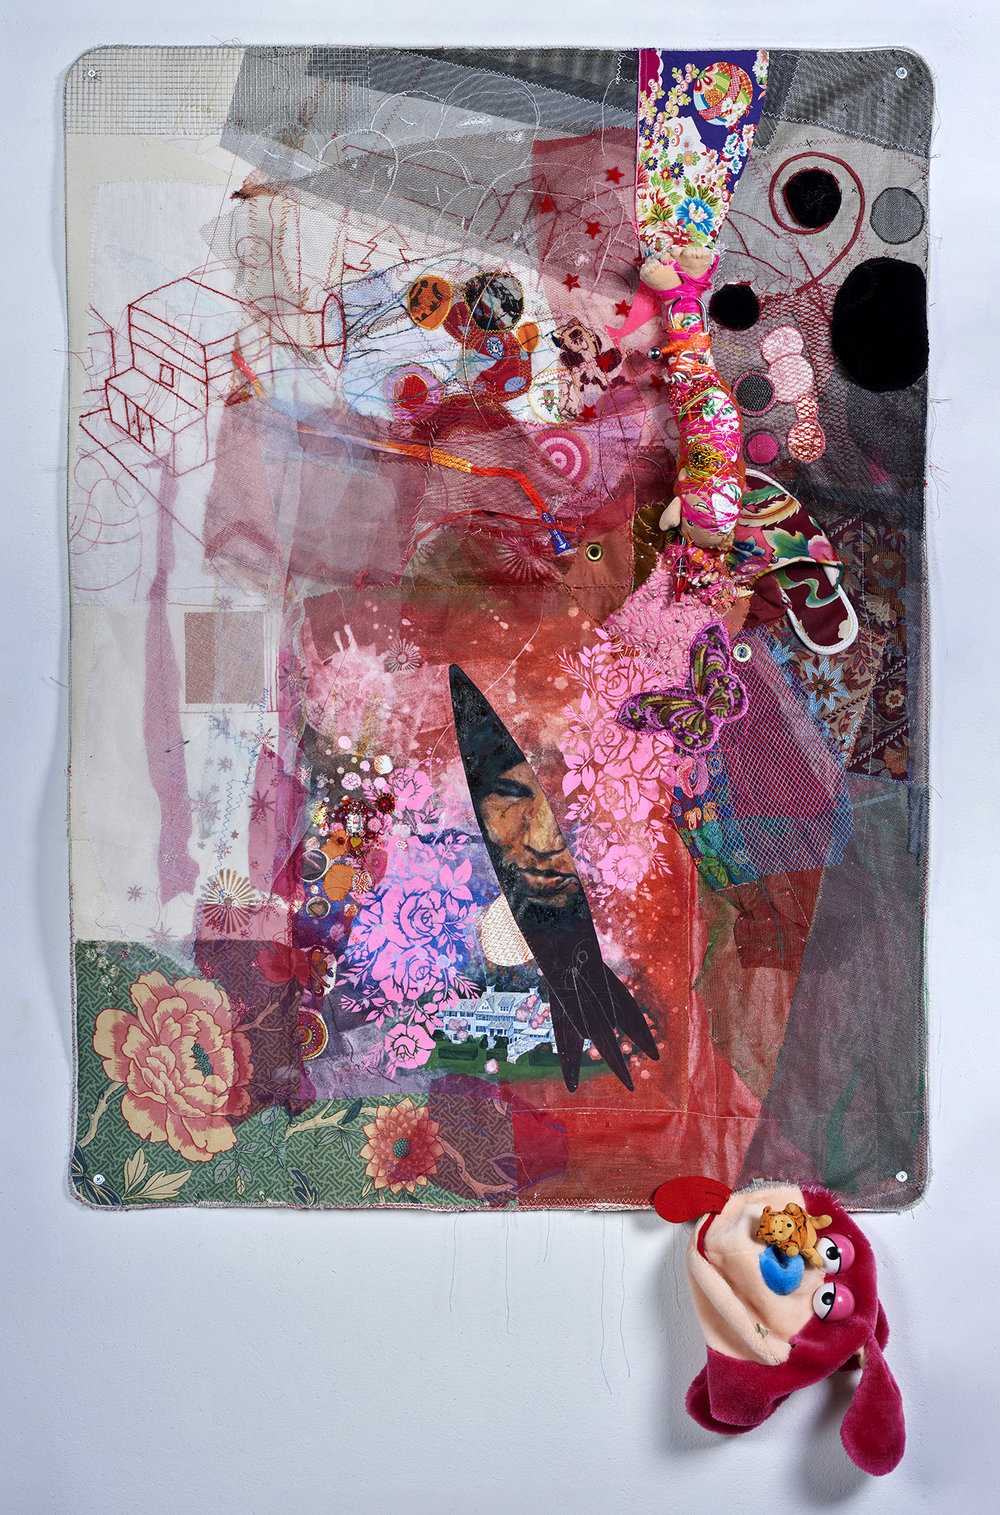 "Rocket Woman and the McMansion :       The Shock Doctrine by Naomi Klein    2016,    65"" x 39"" x 3"", oil paint, gouache, acrylic, paint, fabric paint, thread, found objects, trim, lace & grommets on canvas"